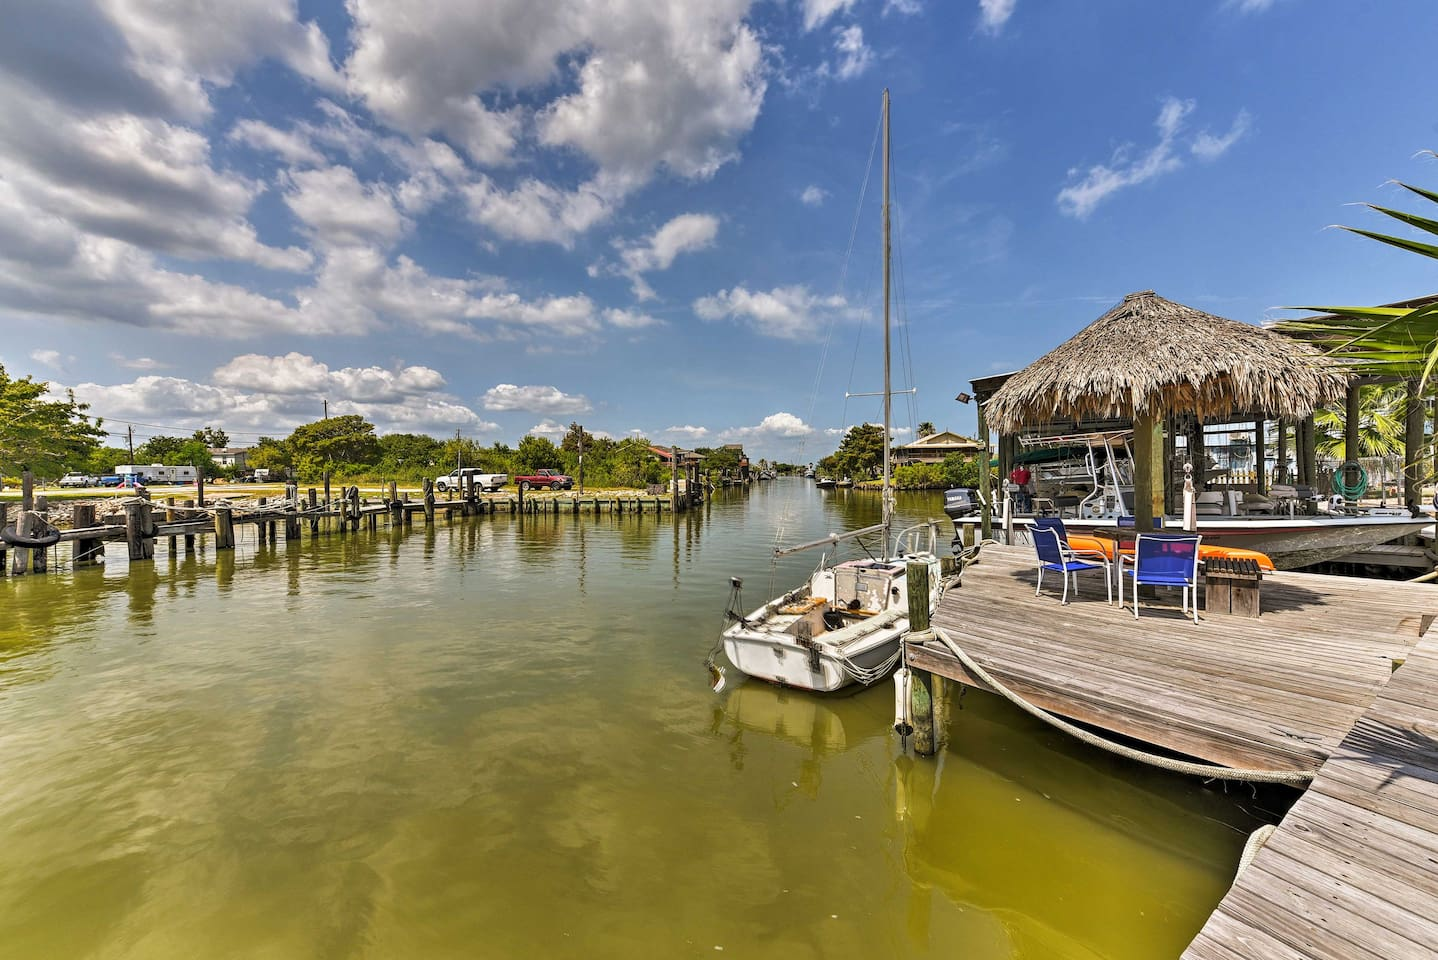 Look forward to days of boating and fishing when you book this San Leon rental!